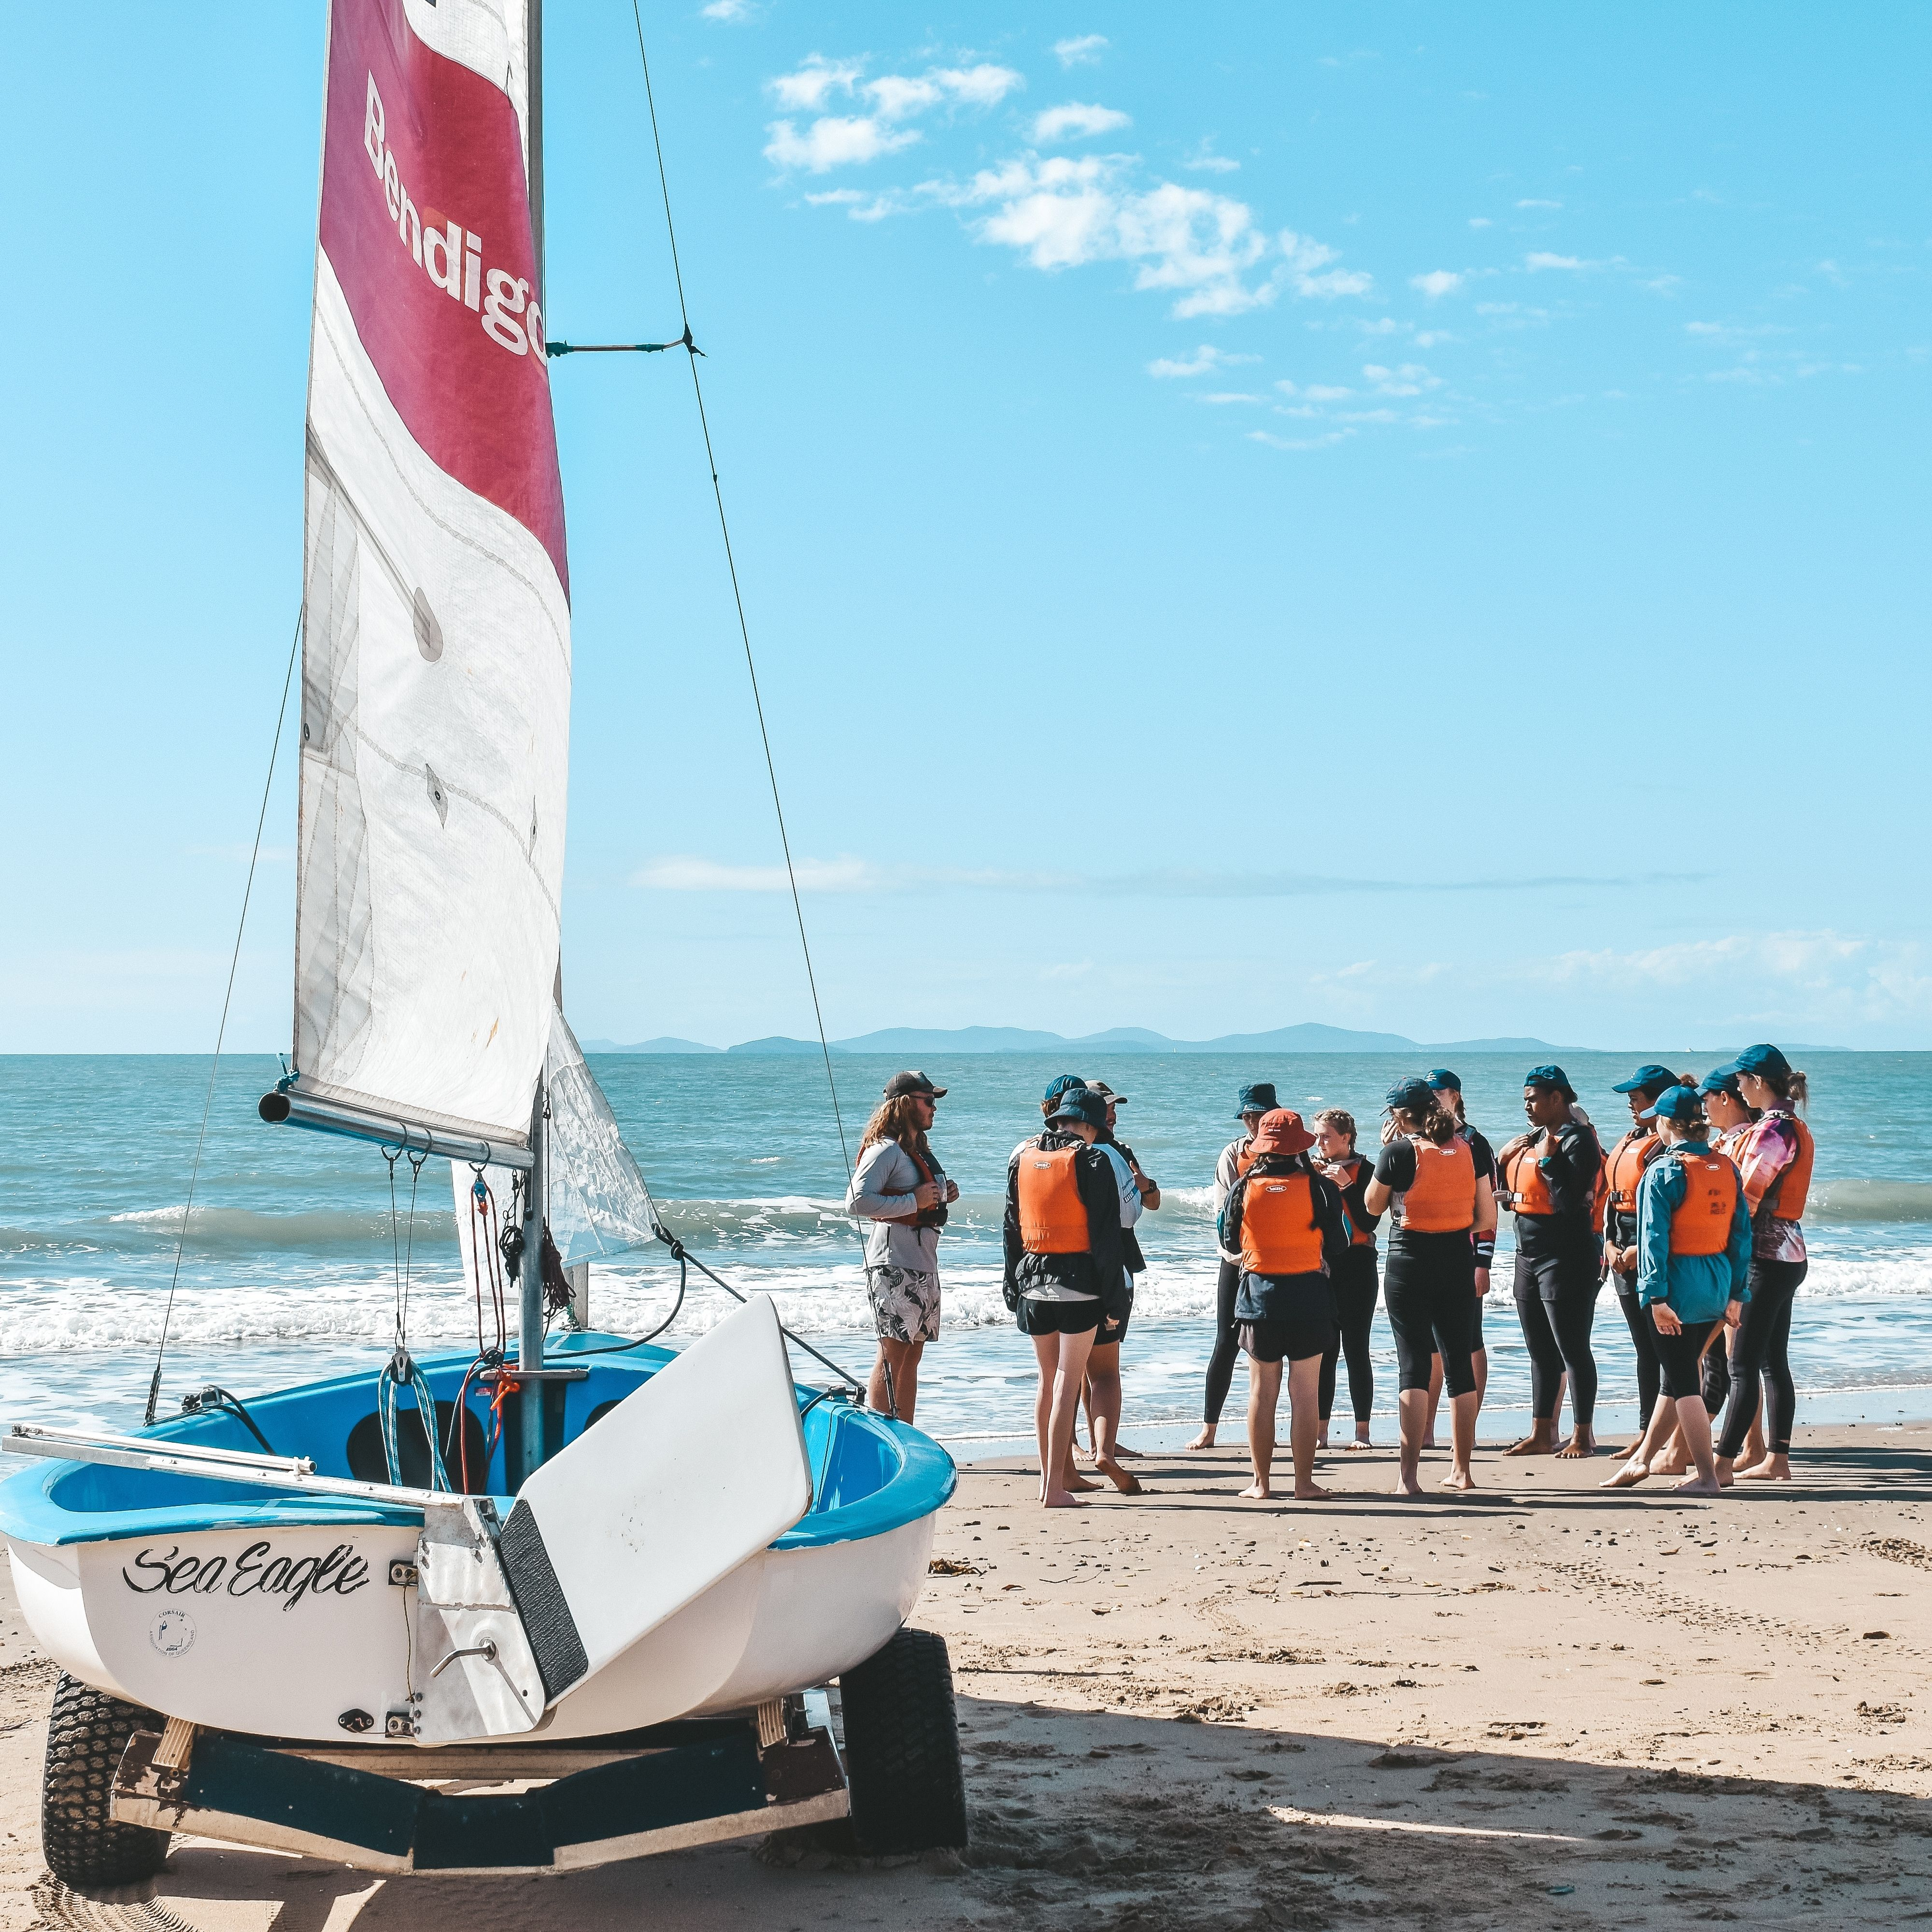 KBSC discover sailing